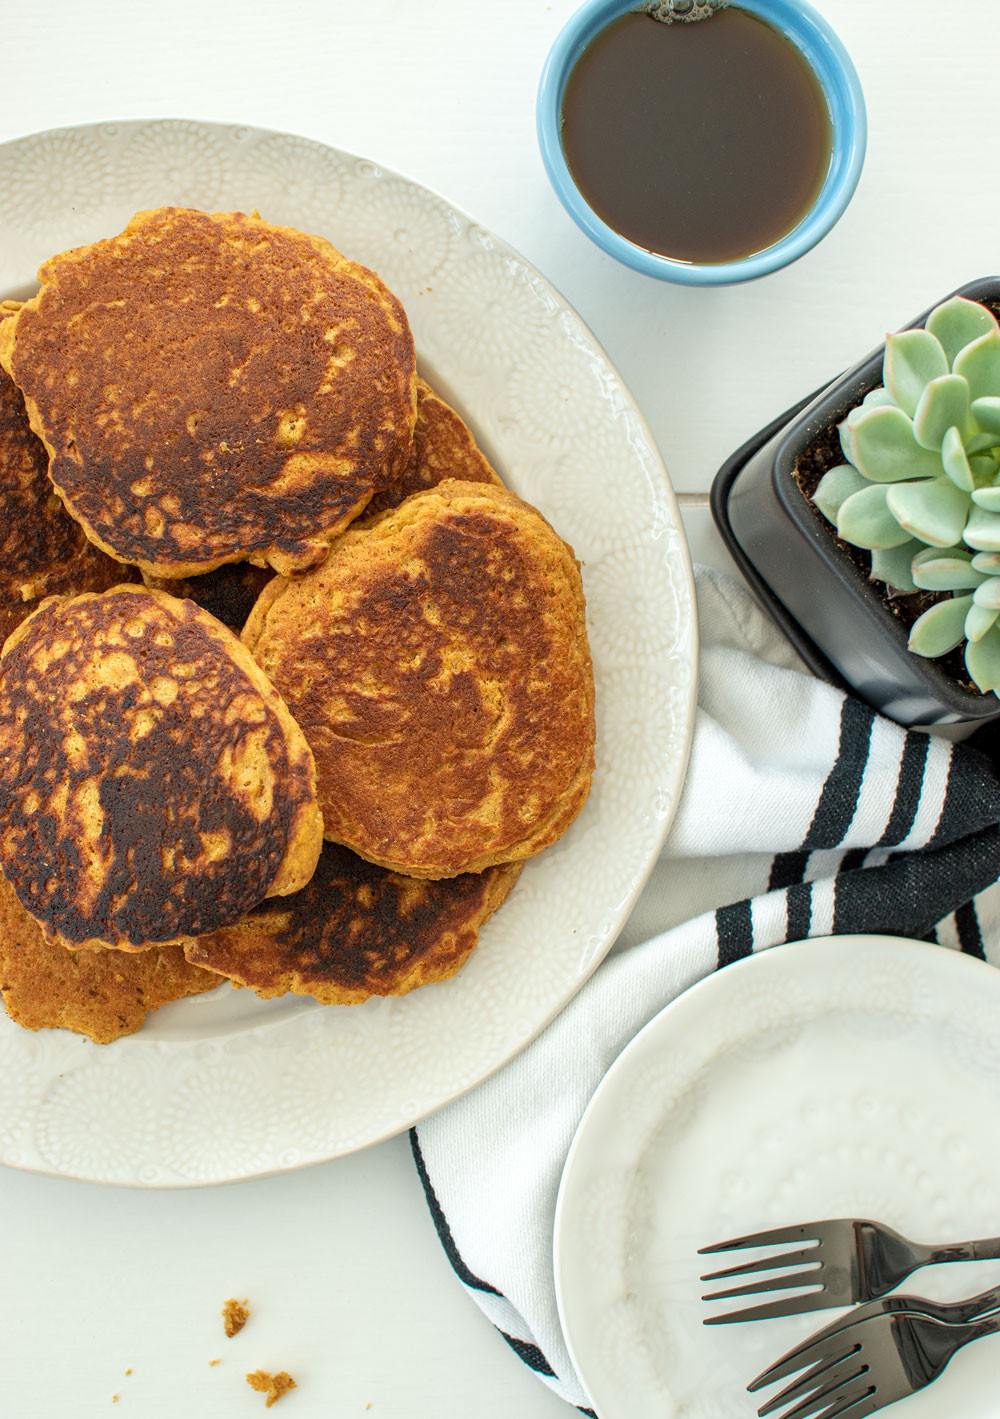 Easy and healthy Pumpkin Spice Pancake recipe. Festive and fun Thanksgiving breakfast pancake recipe. These fall inspired pancakes are just what you want #pancakes #organic #pumpkinspice #pumpkin #healthy #healthypancakes #pancakes #easy #easypancakes